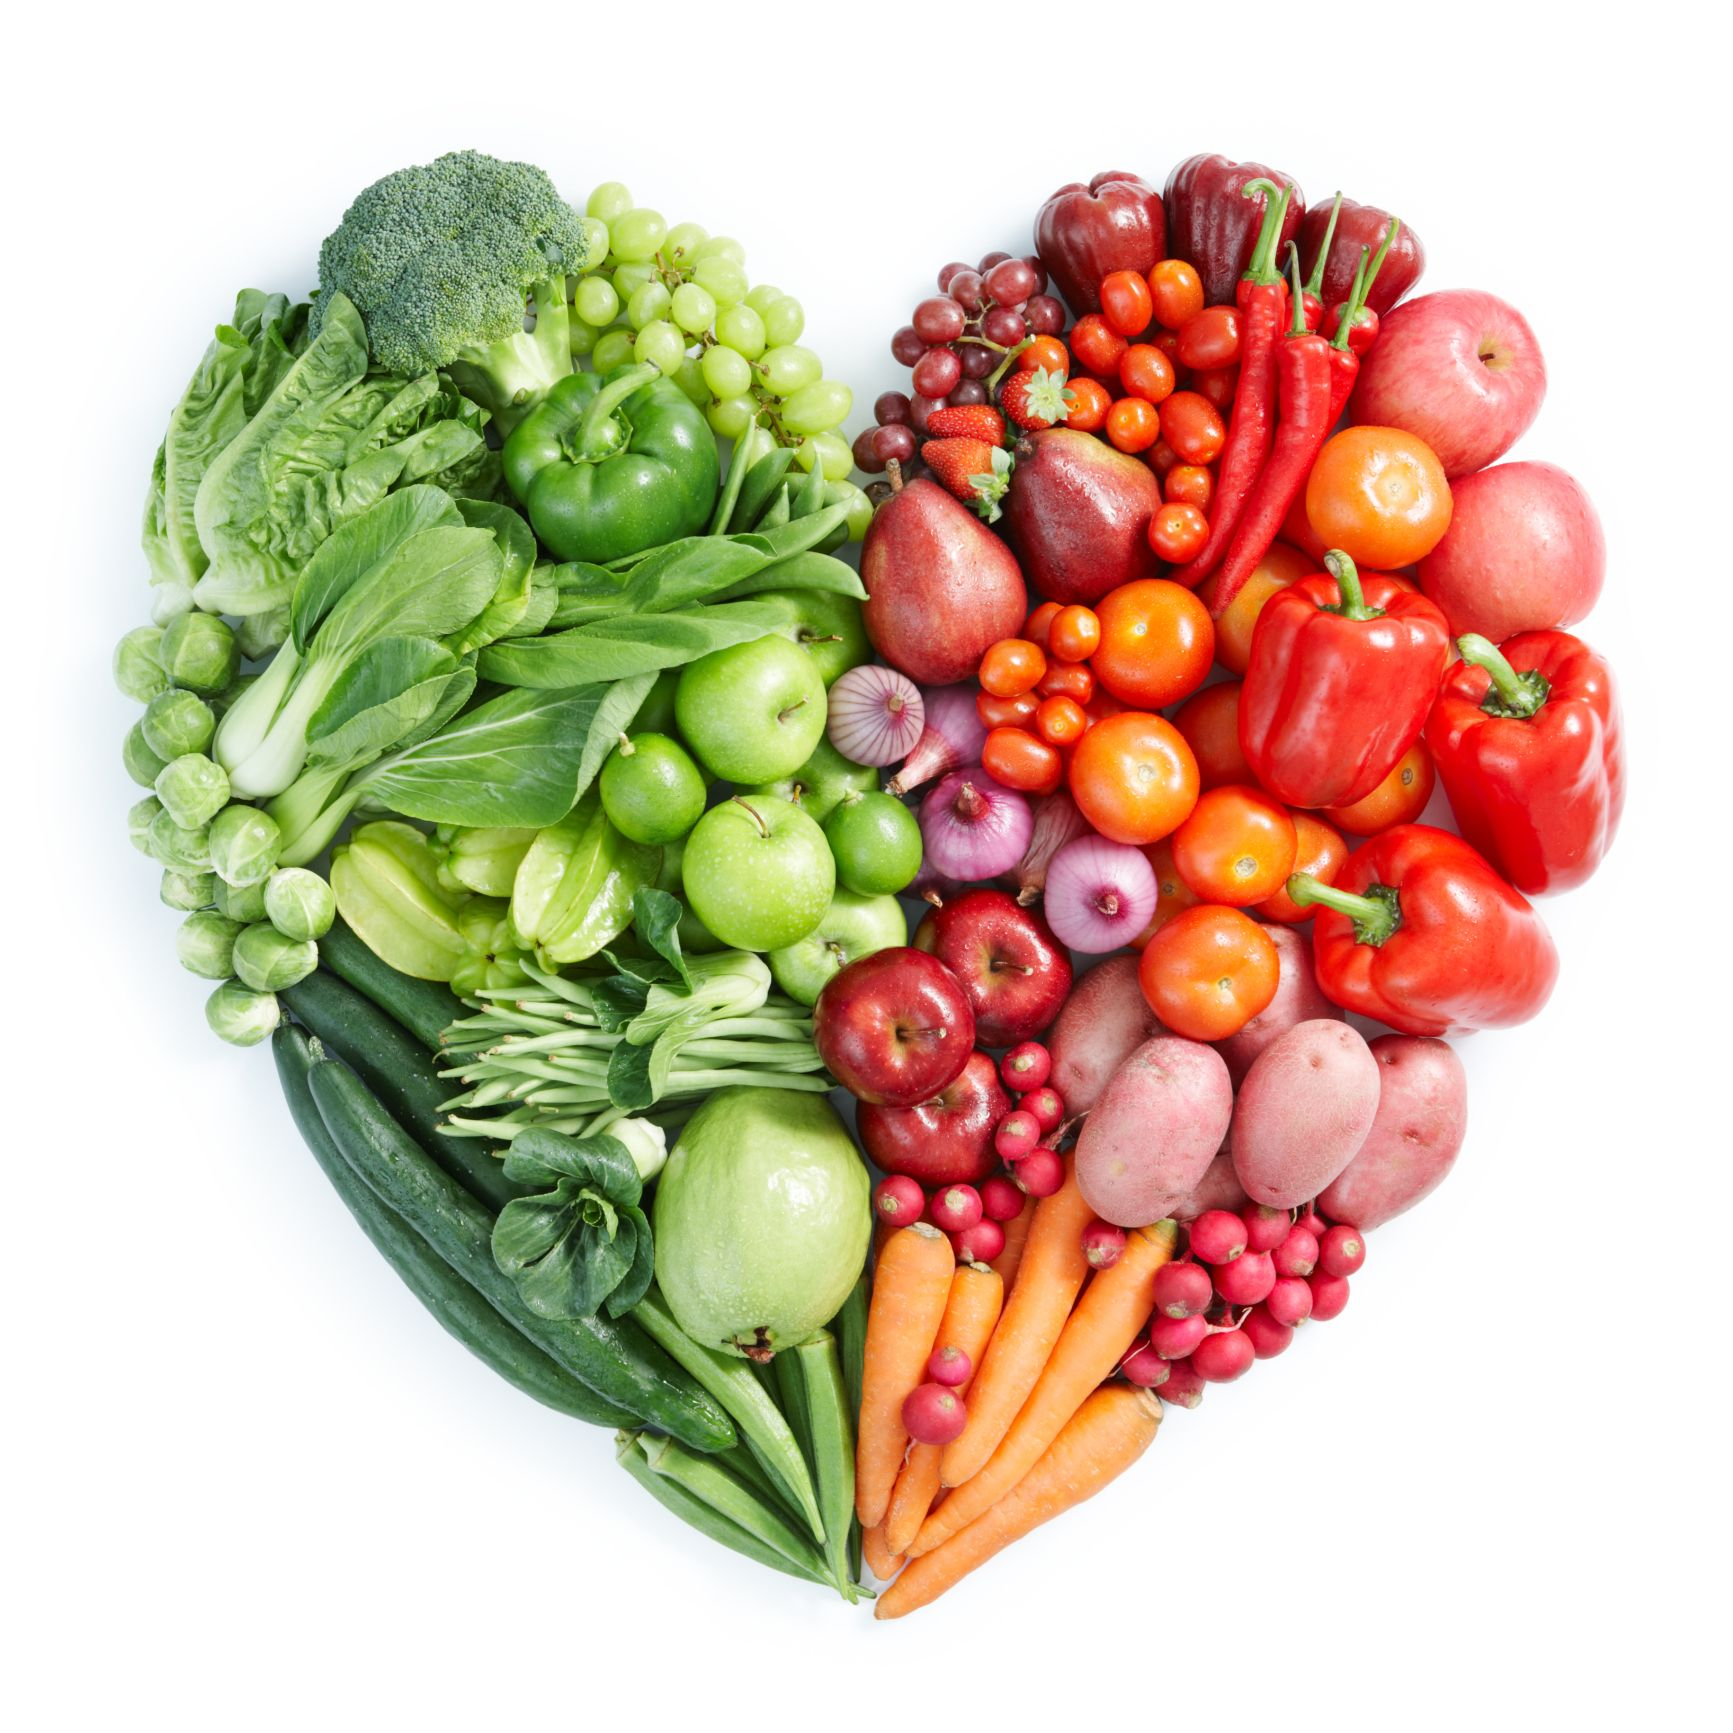 Heart Disease at Any Age Food shopping list, Whole food